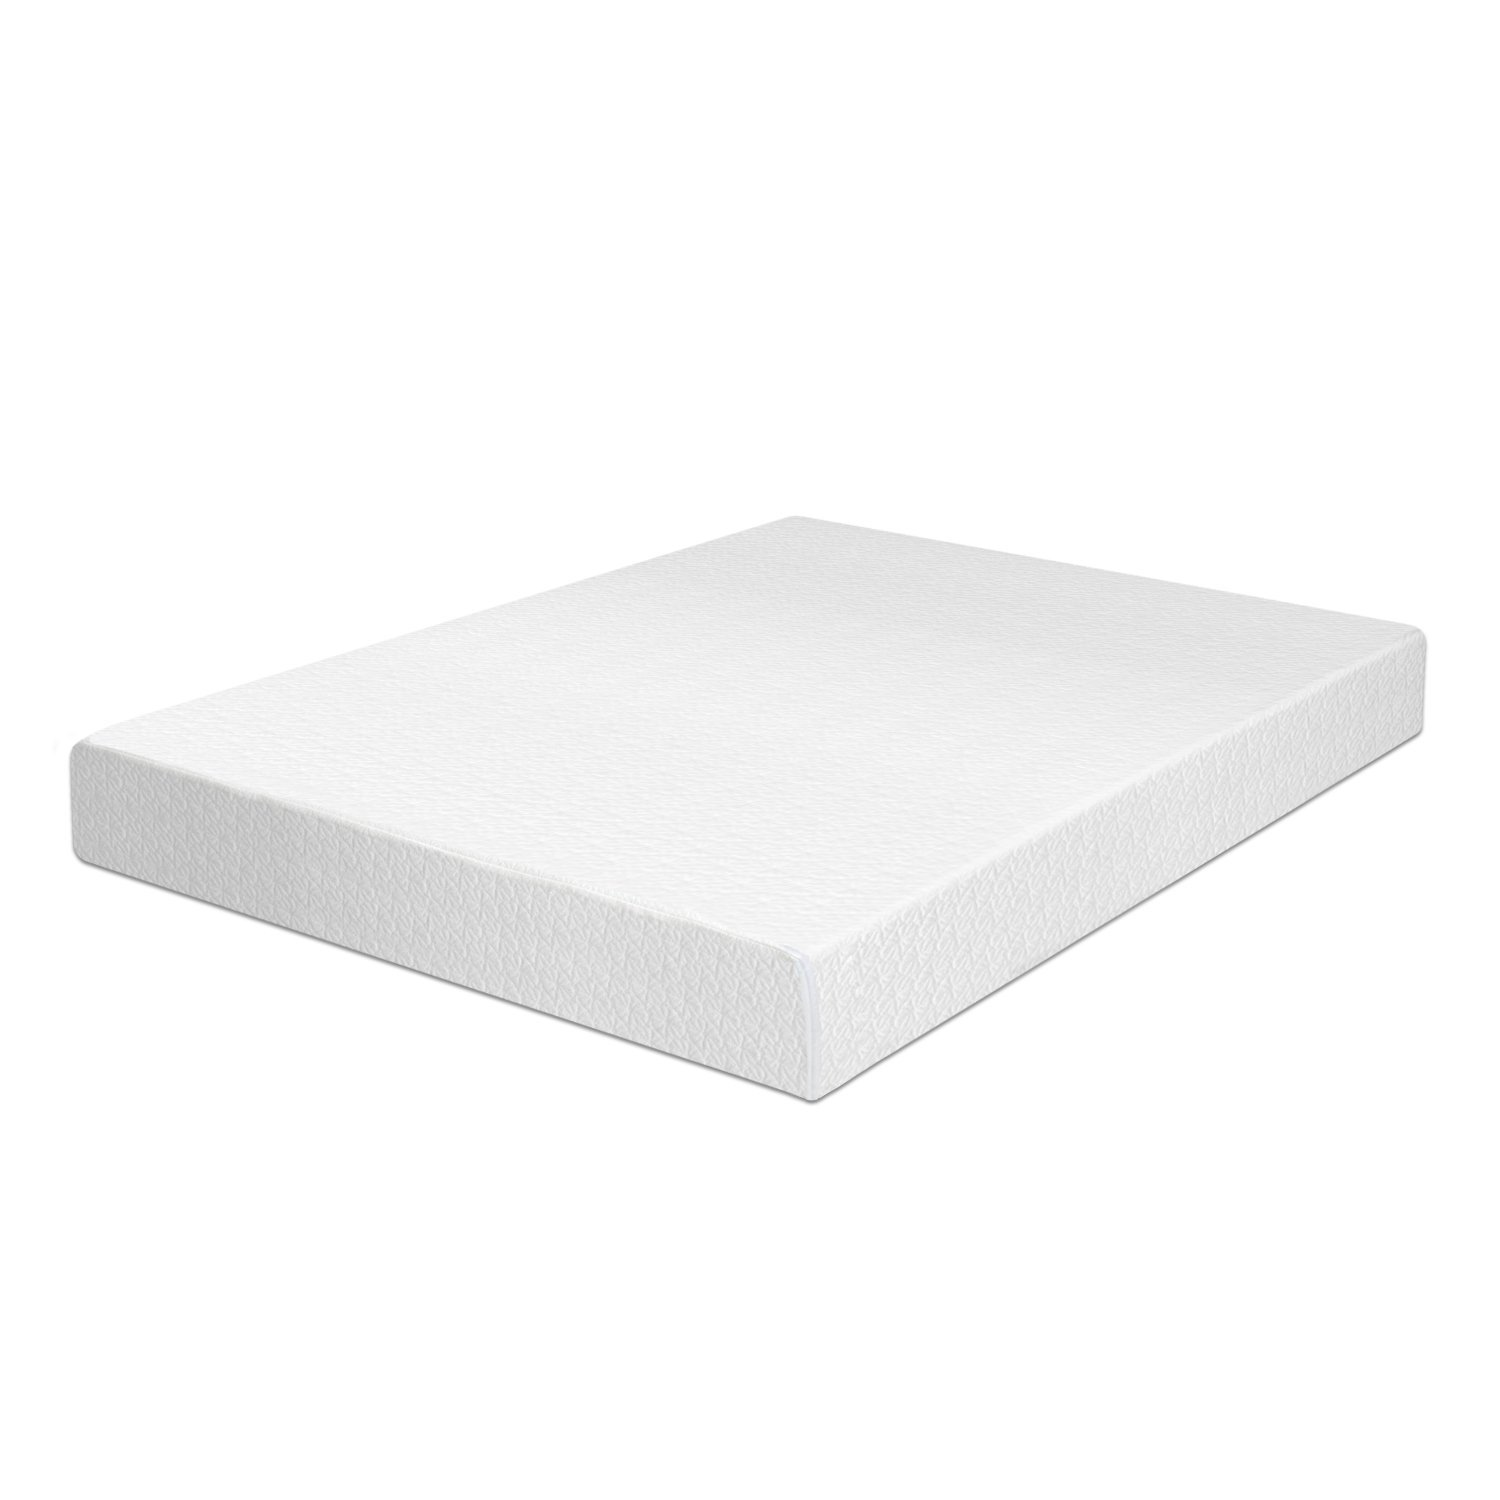 Buy Queen Mattress Cheap Queen Size Beds And Mattresses For Economical Choice